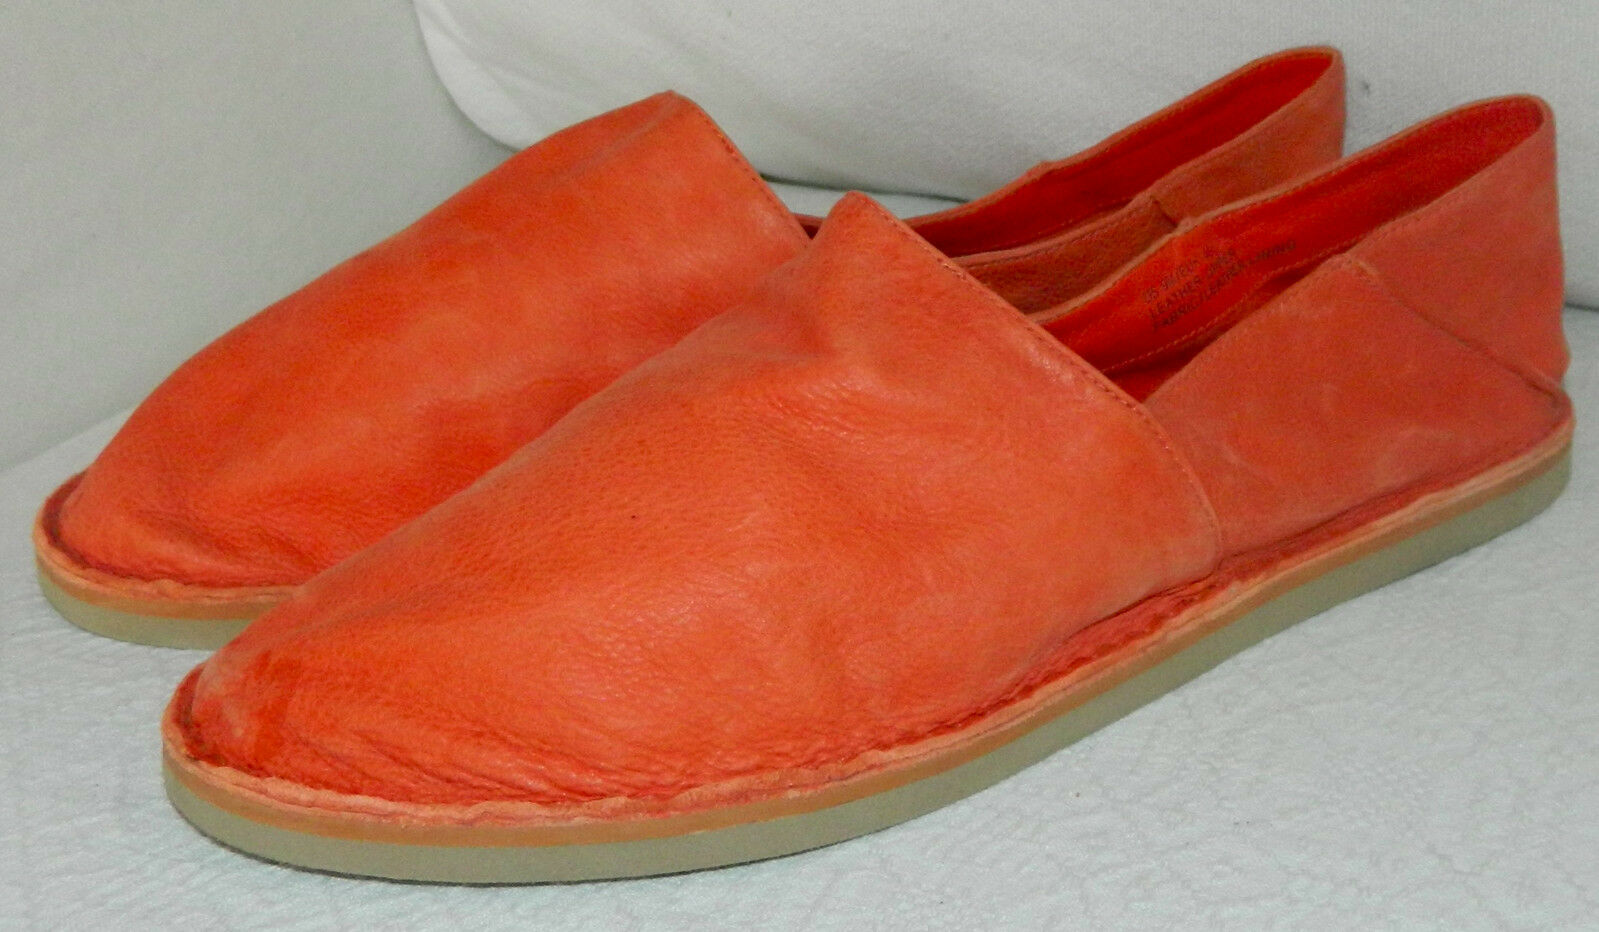 VINCE Kia FLATS Loafers ORANGE Sz. 9 Retails Slip On Schuhes LEATHER Retails 9 198 CHIC